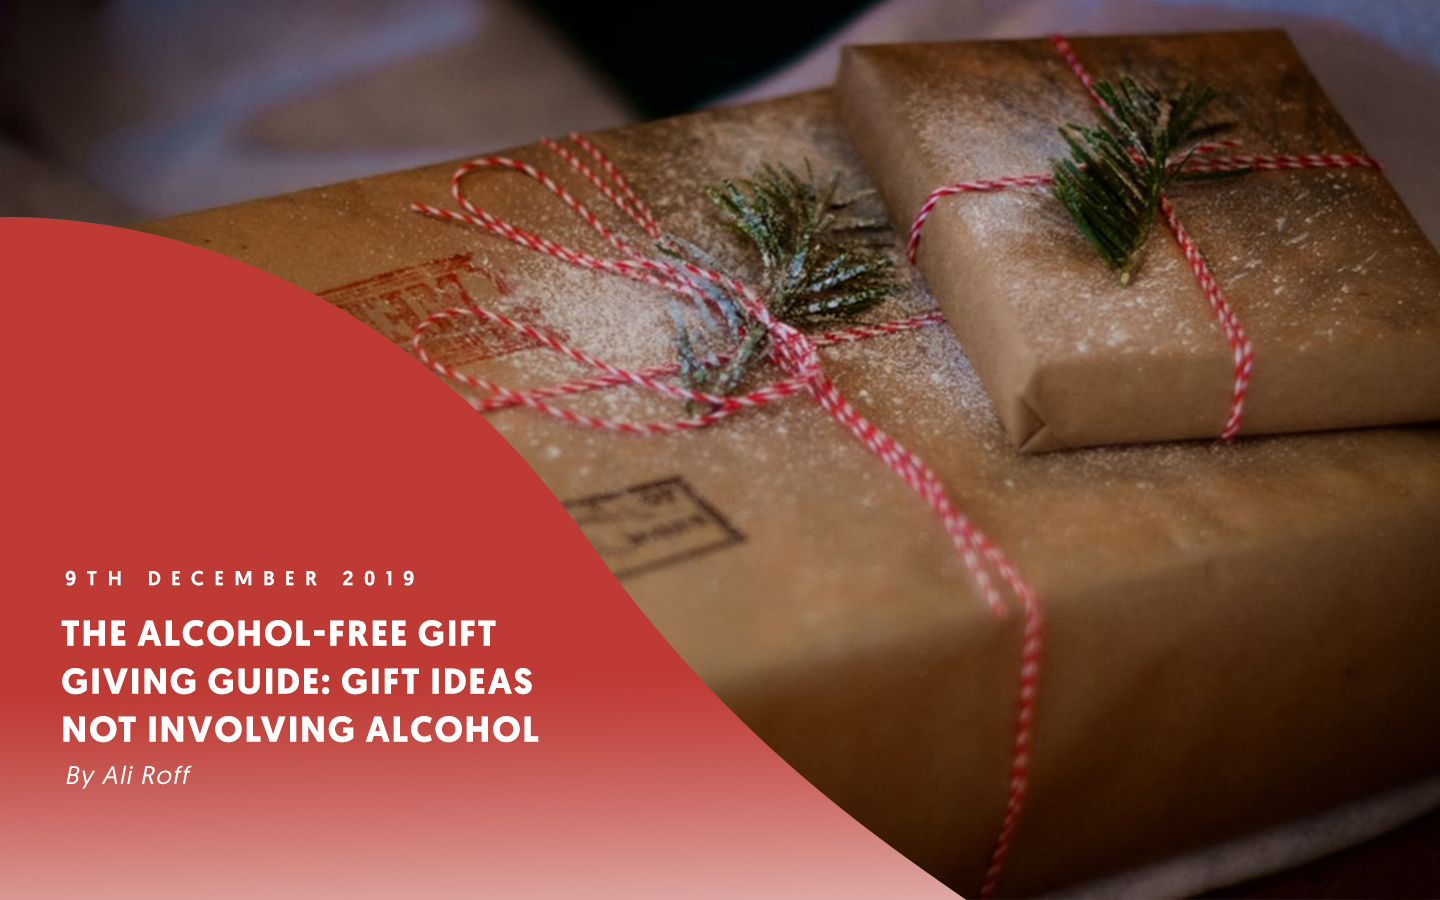 The alcohol-free gift giving guide: Gift ideas not involving alcohol – by Ali Roff